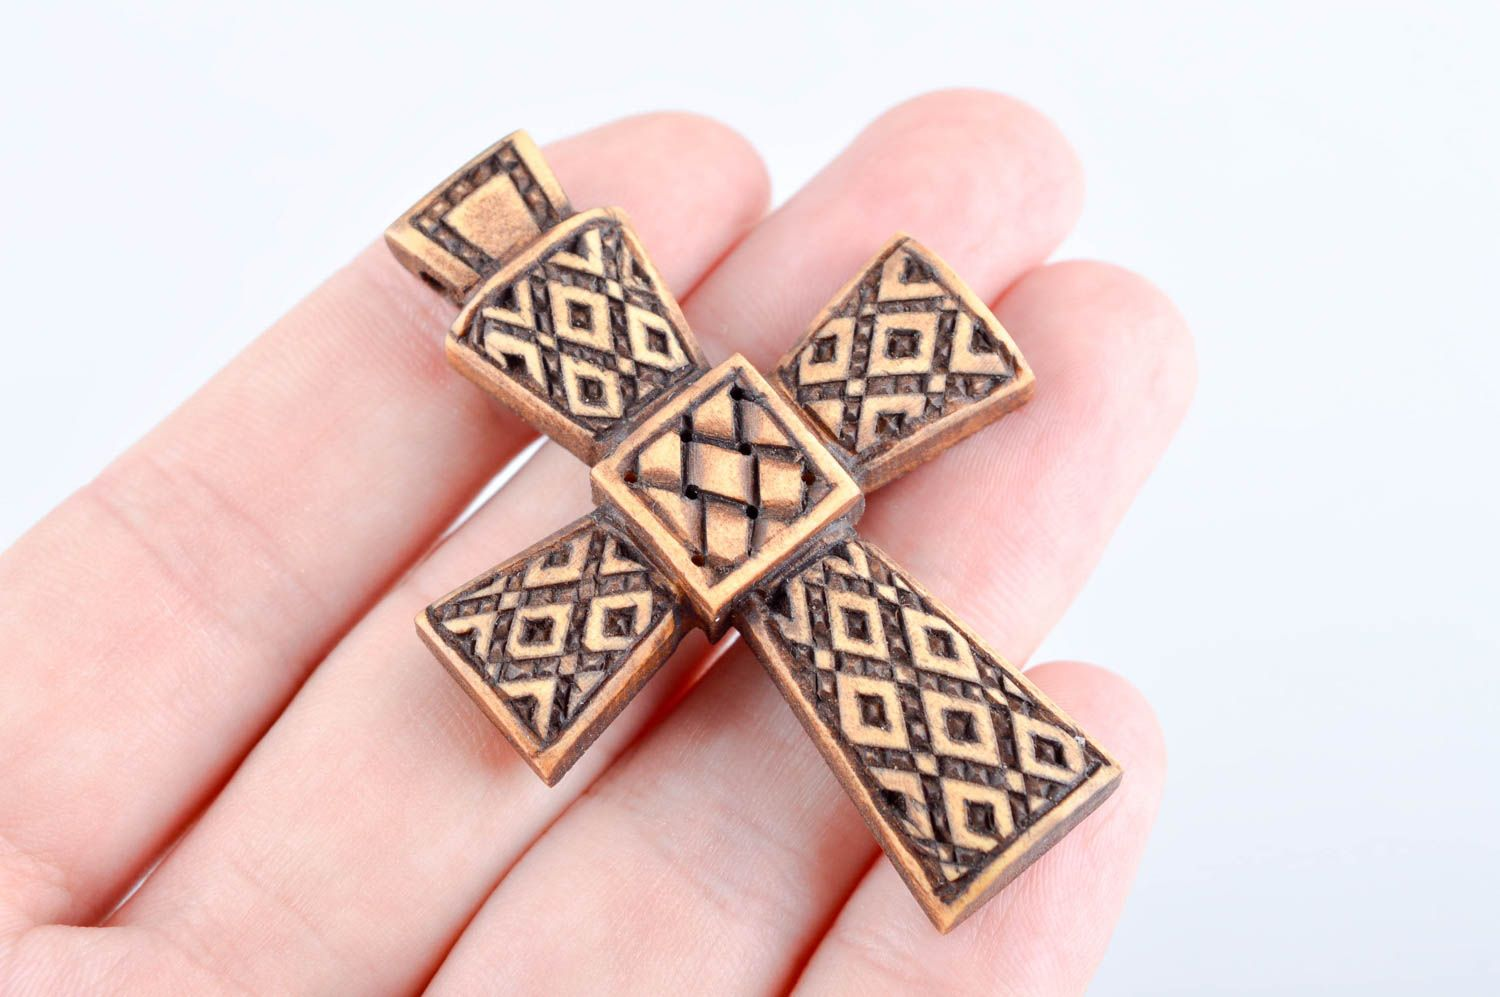 Handmade cross designer accessory unusual gift wooden jewelry wooden pendant photo 6